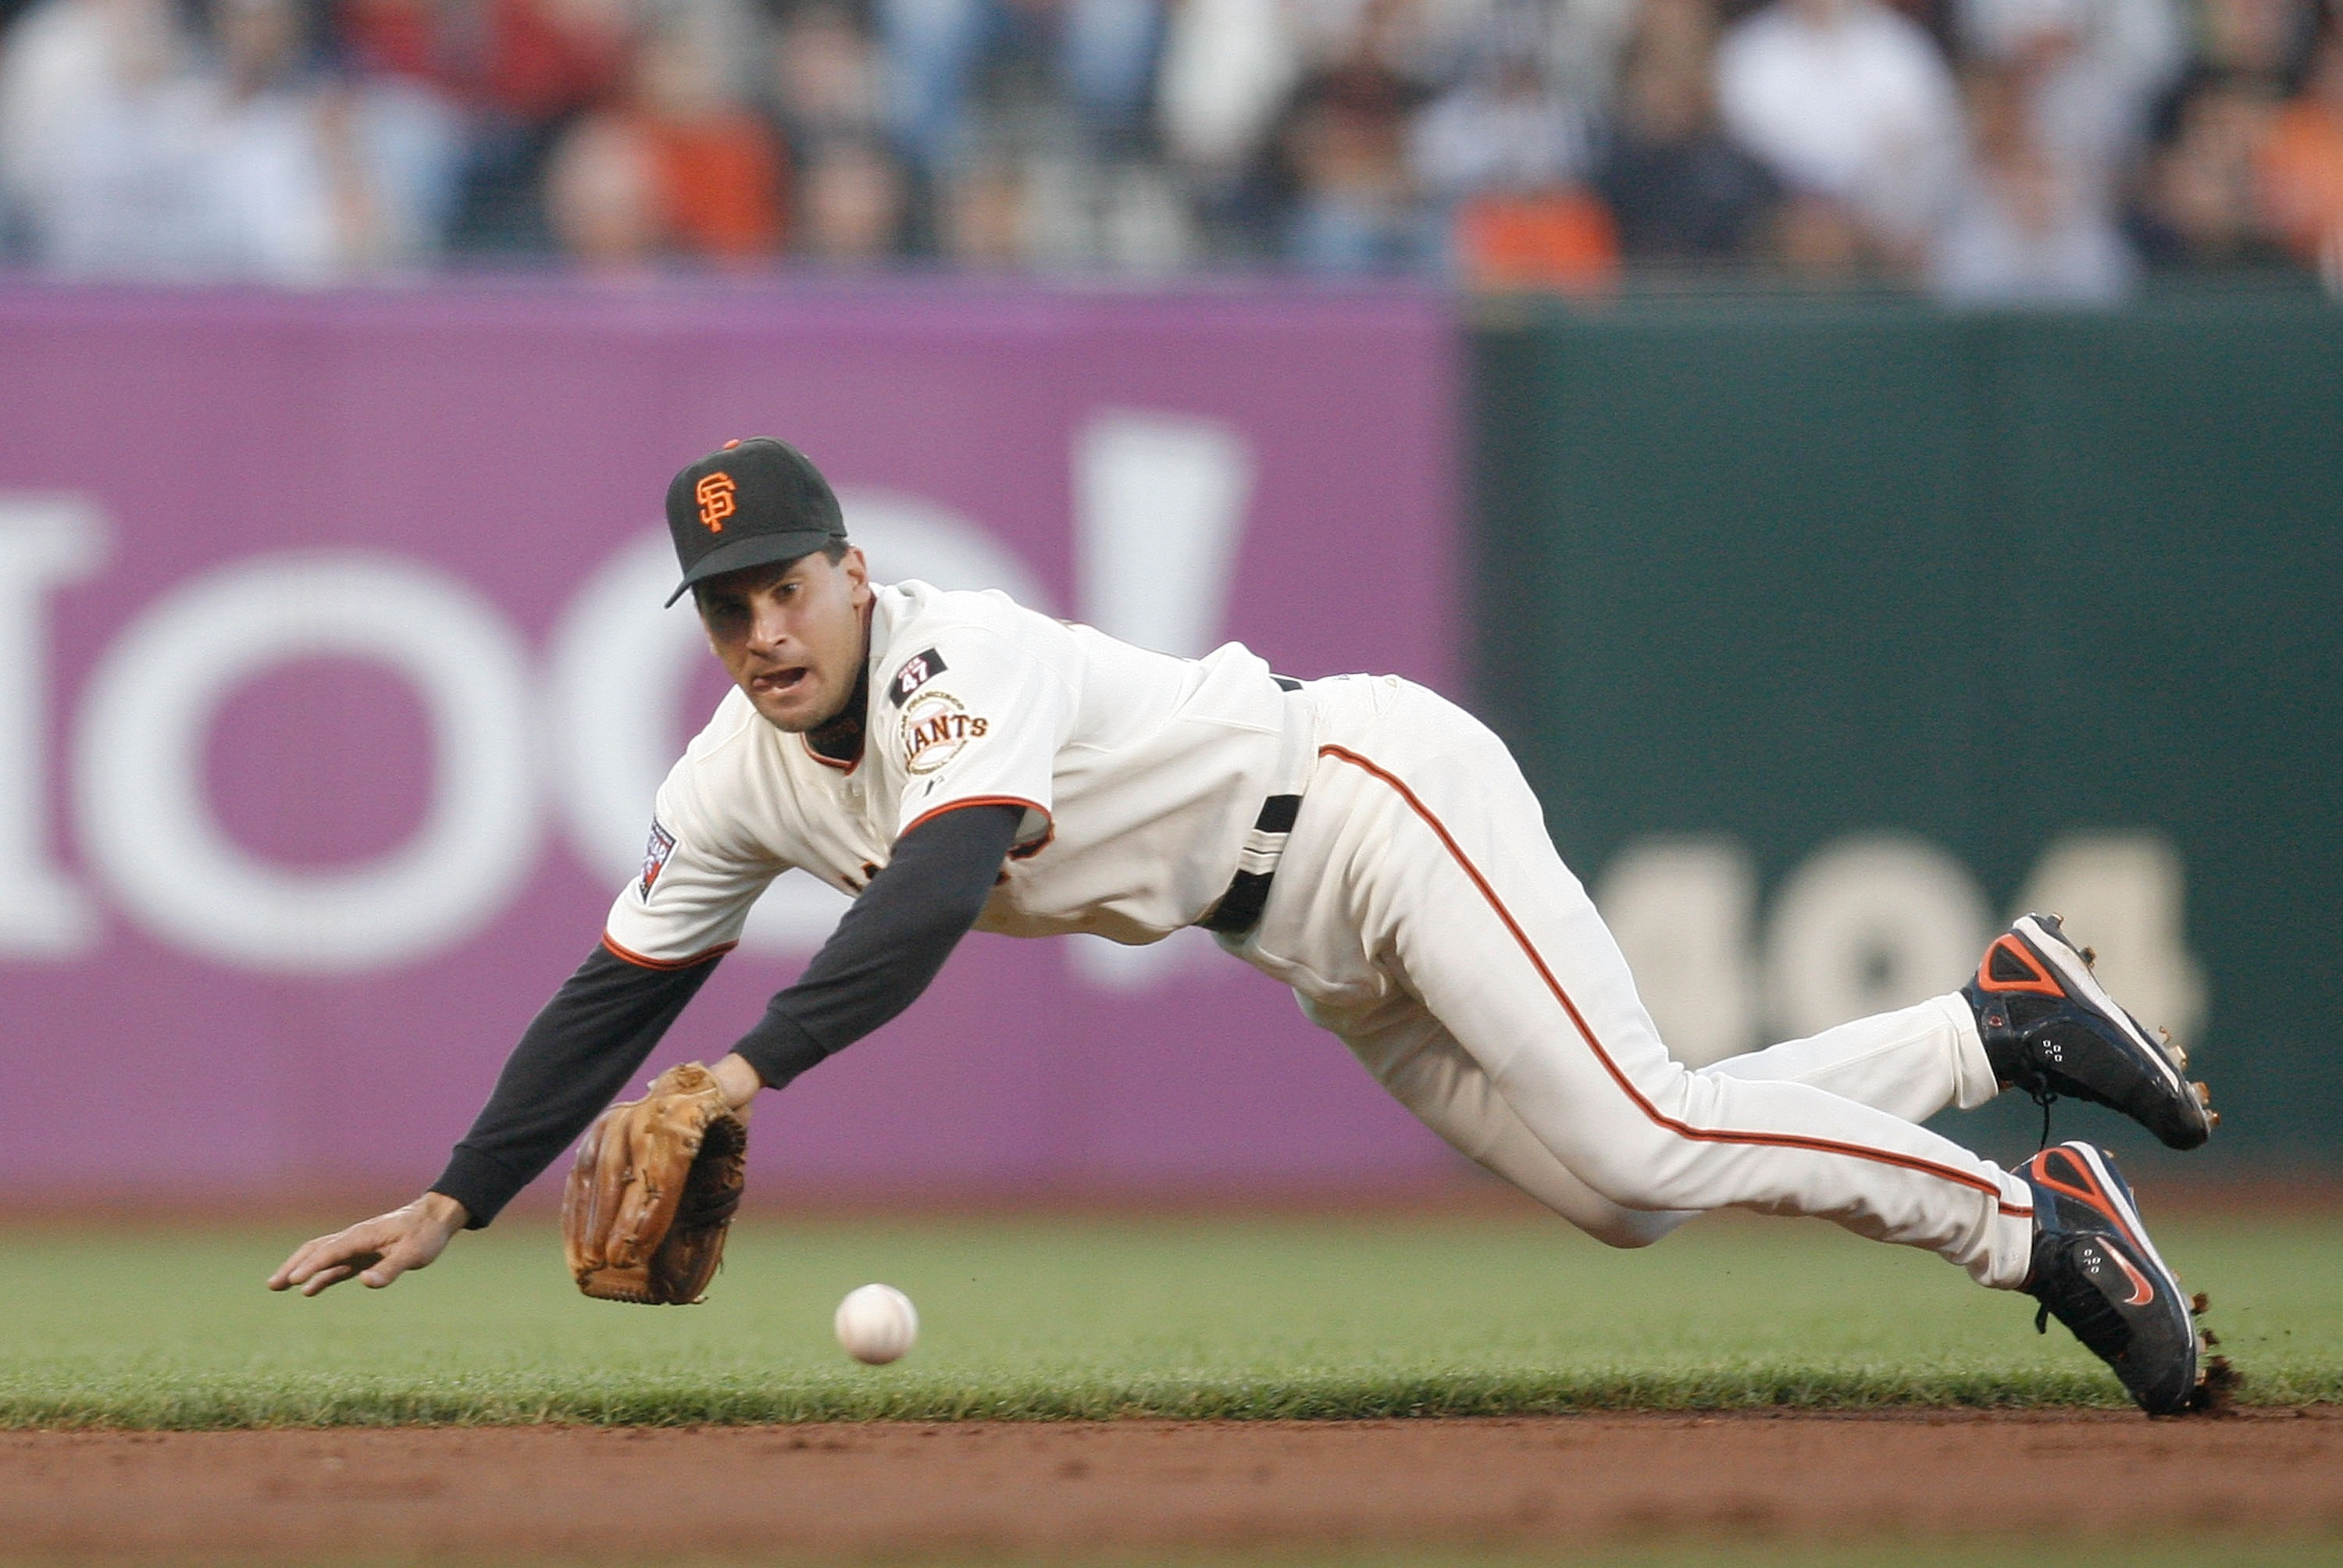 SAN FRANCISCO - AUGUST 21: Shortstop Omar Vizquel #13 of the San Francisco Giants dives for a groundball against the Chicago Cubs during a Major League Baseball game at AT&T Park on August 21, 2007 in San Francisco, California.  (Photo by Greg Trott/Getty